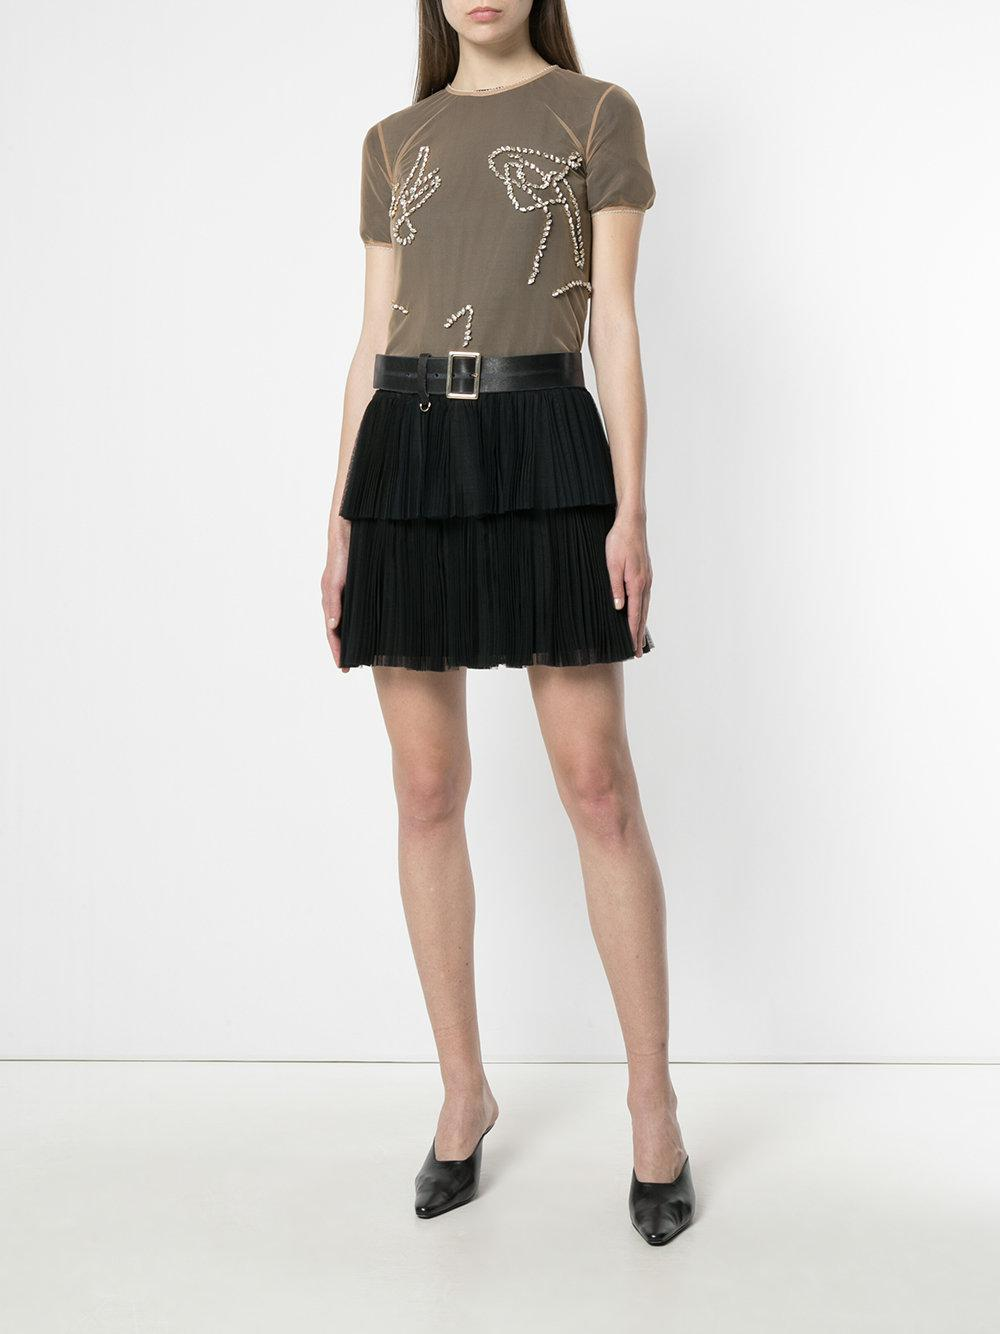 sheer embellished T-shirt - Nude & Neutrals Y / Project